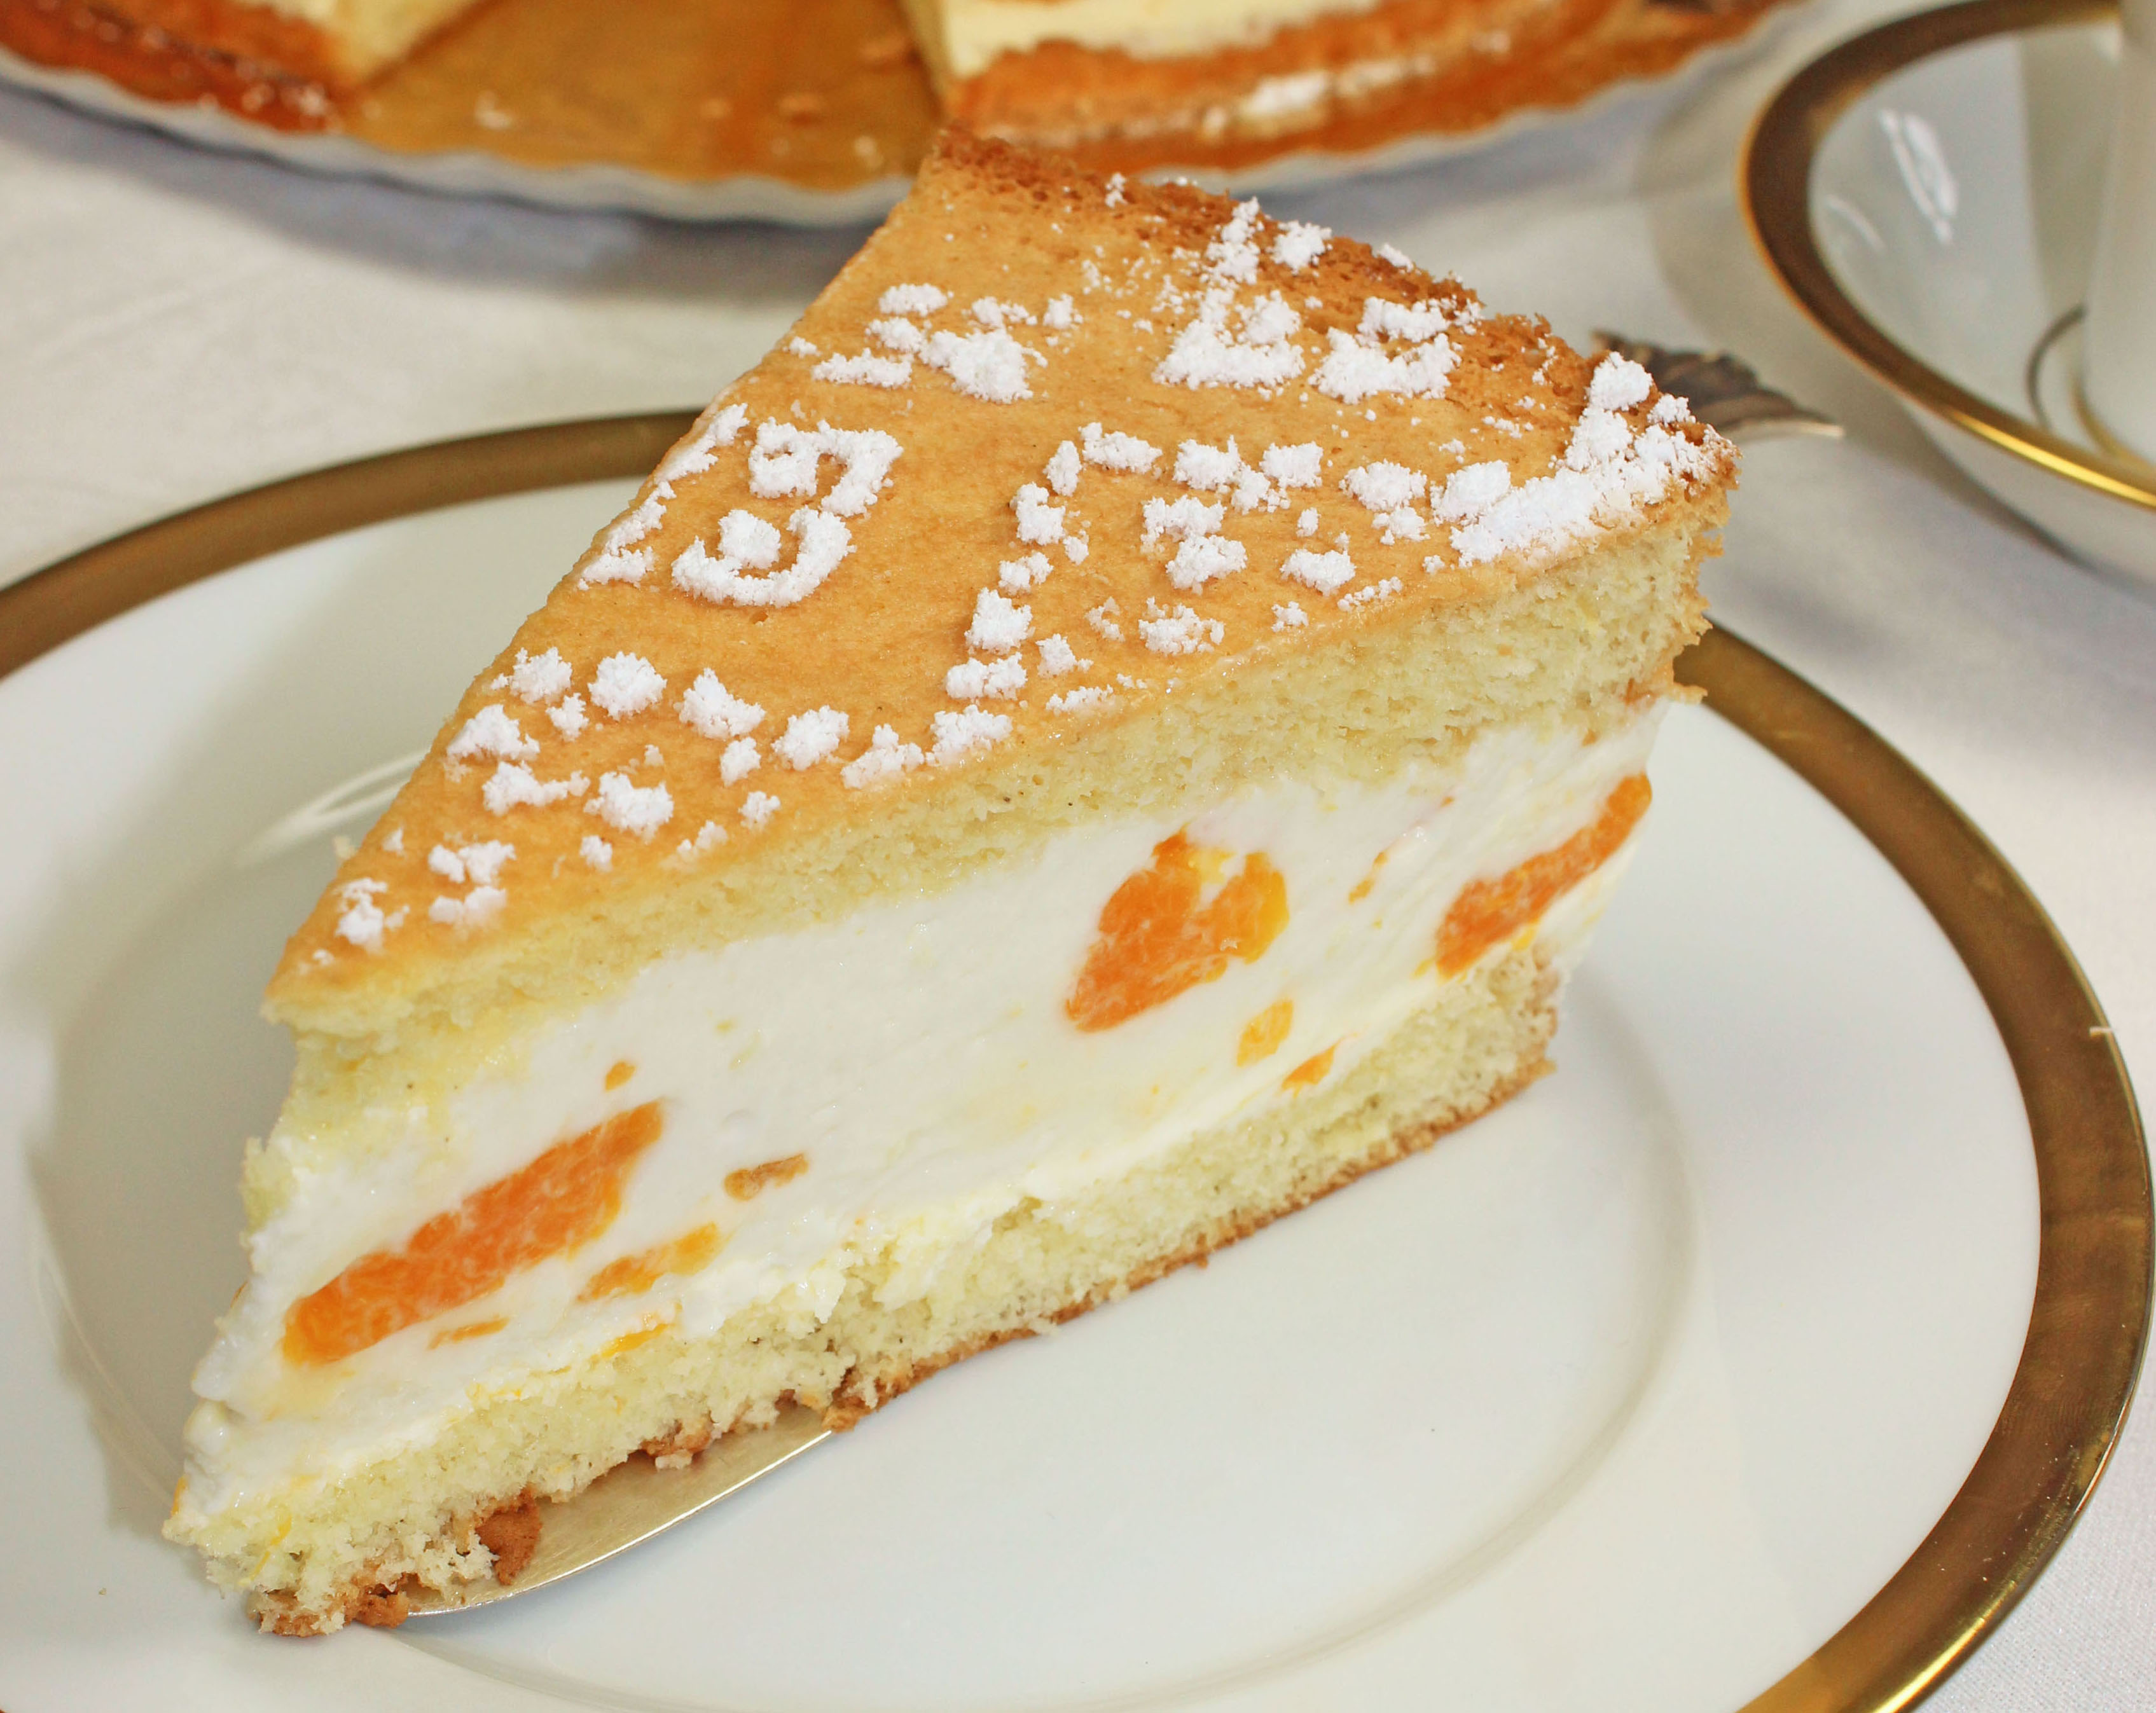 Quark-Mandarinen Torte